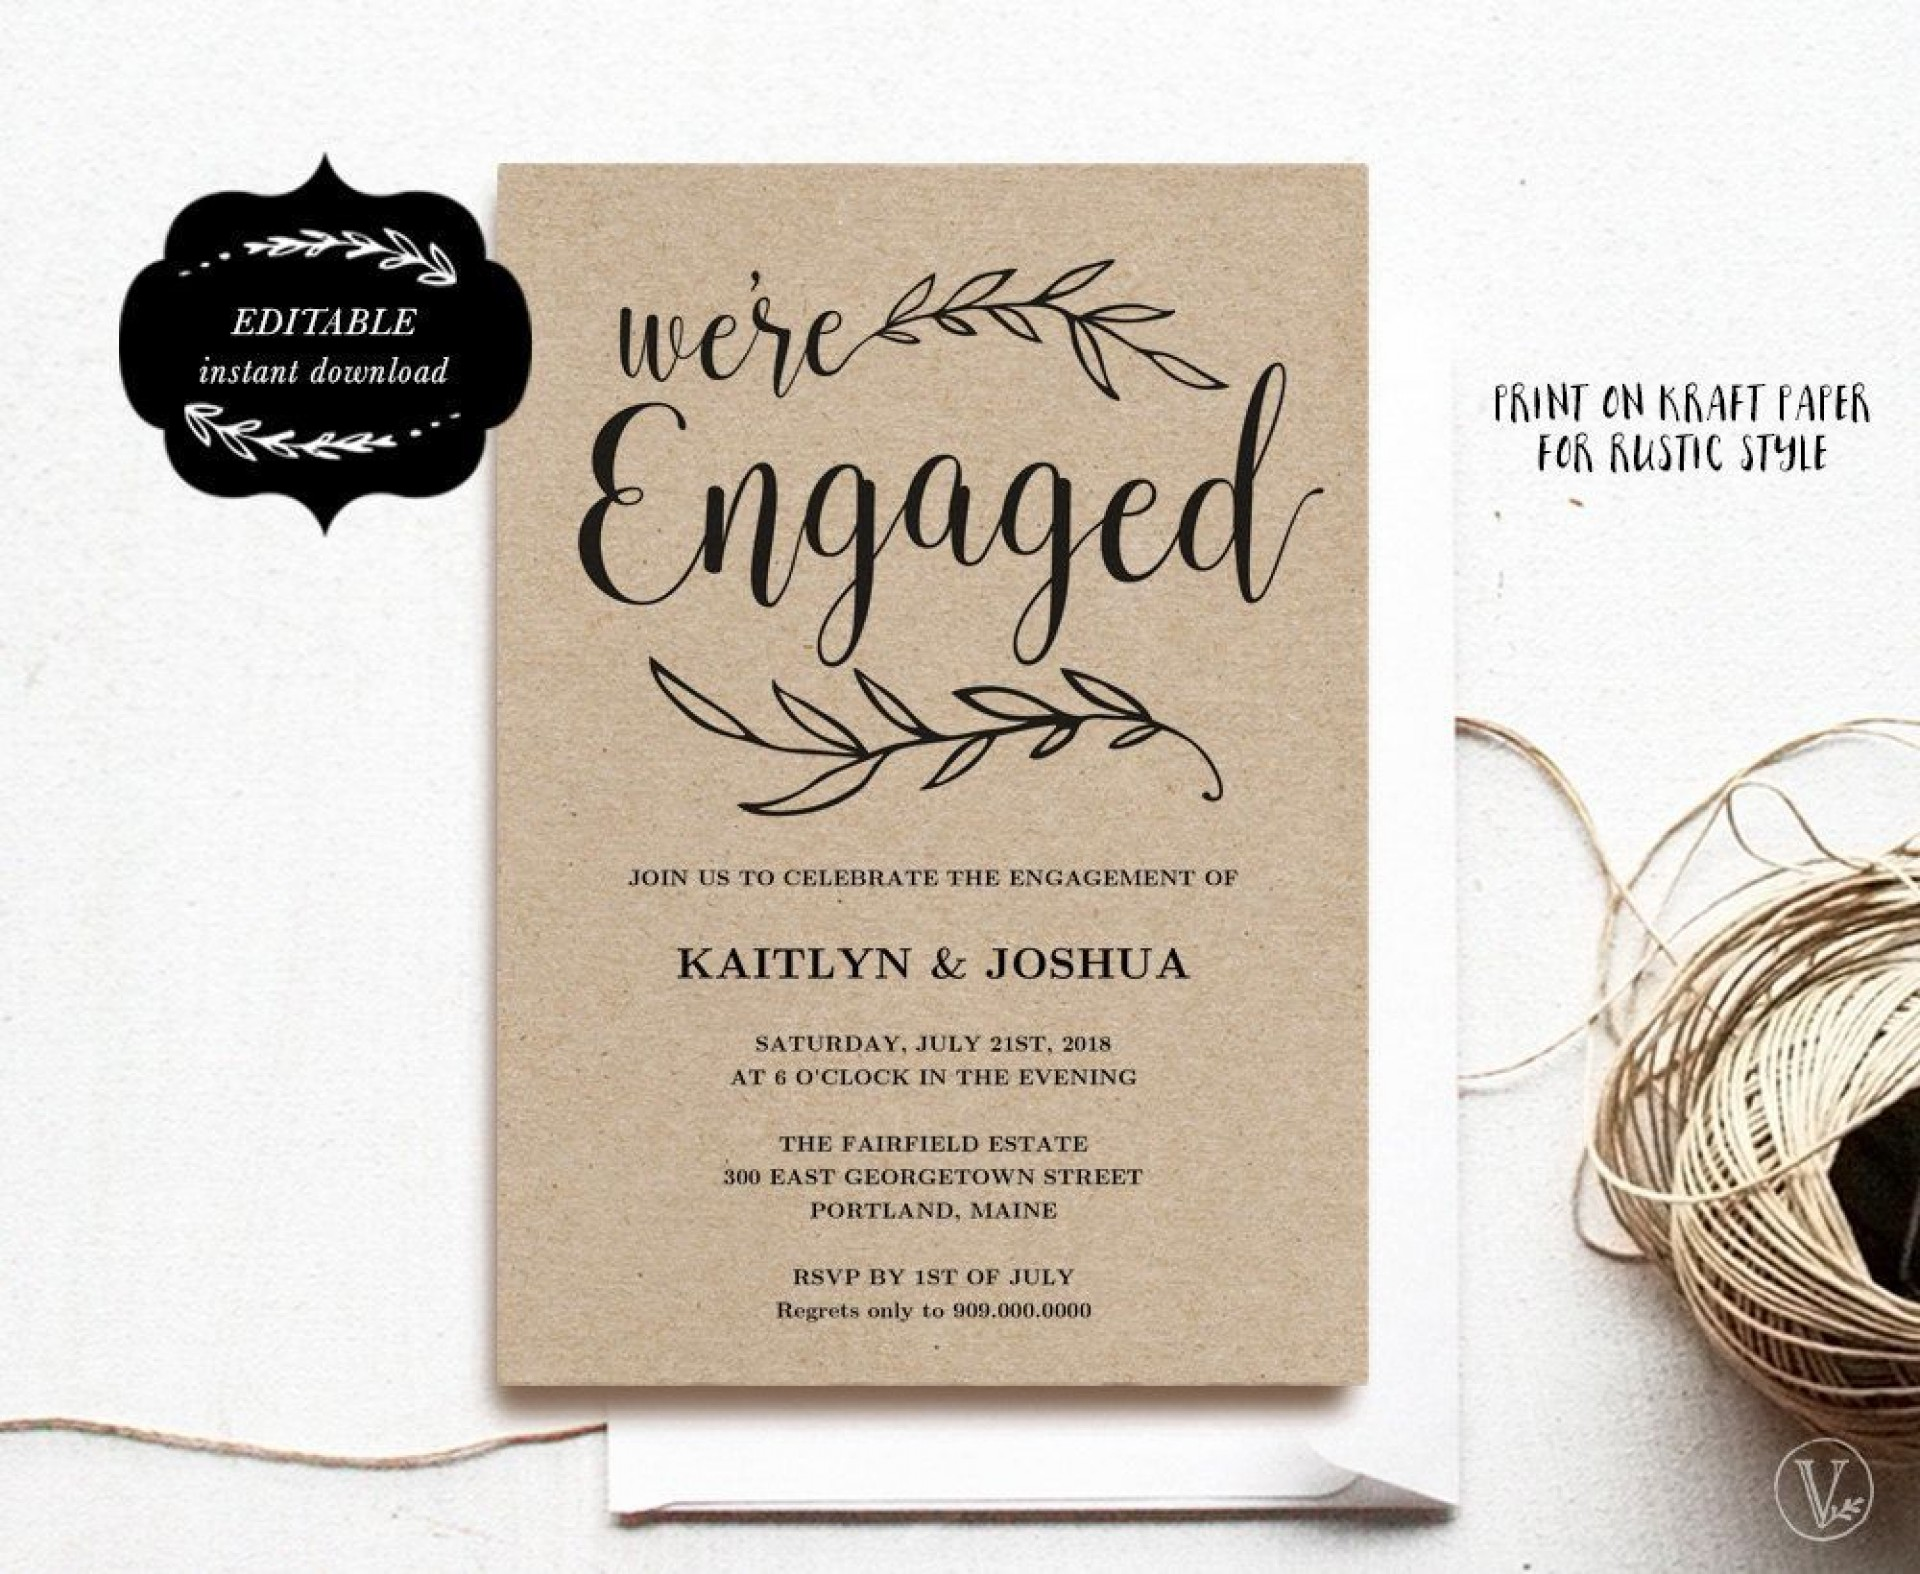 000 Wonderful Free Engagement Invitation Template Online With Photo Design 1920